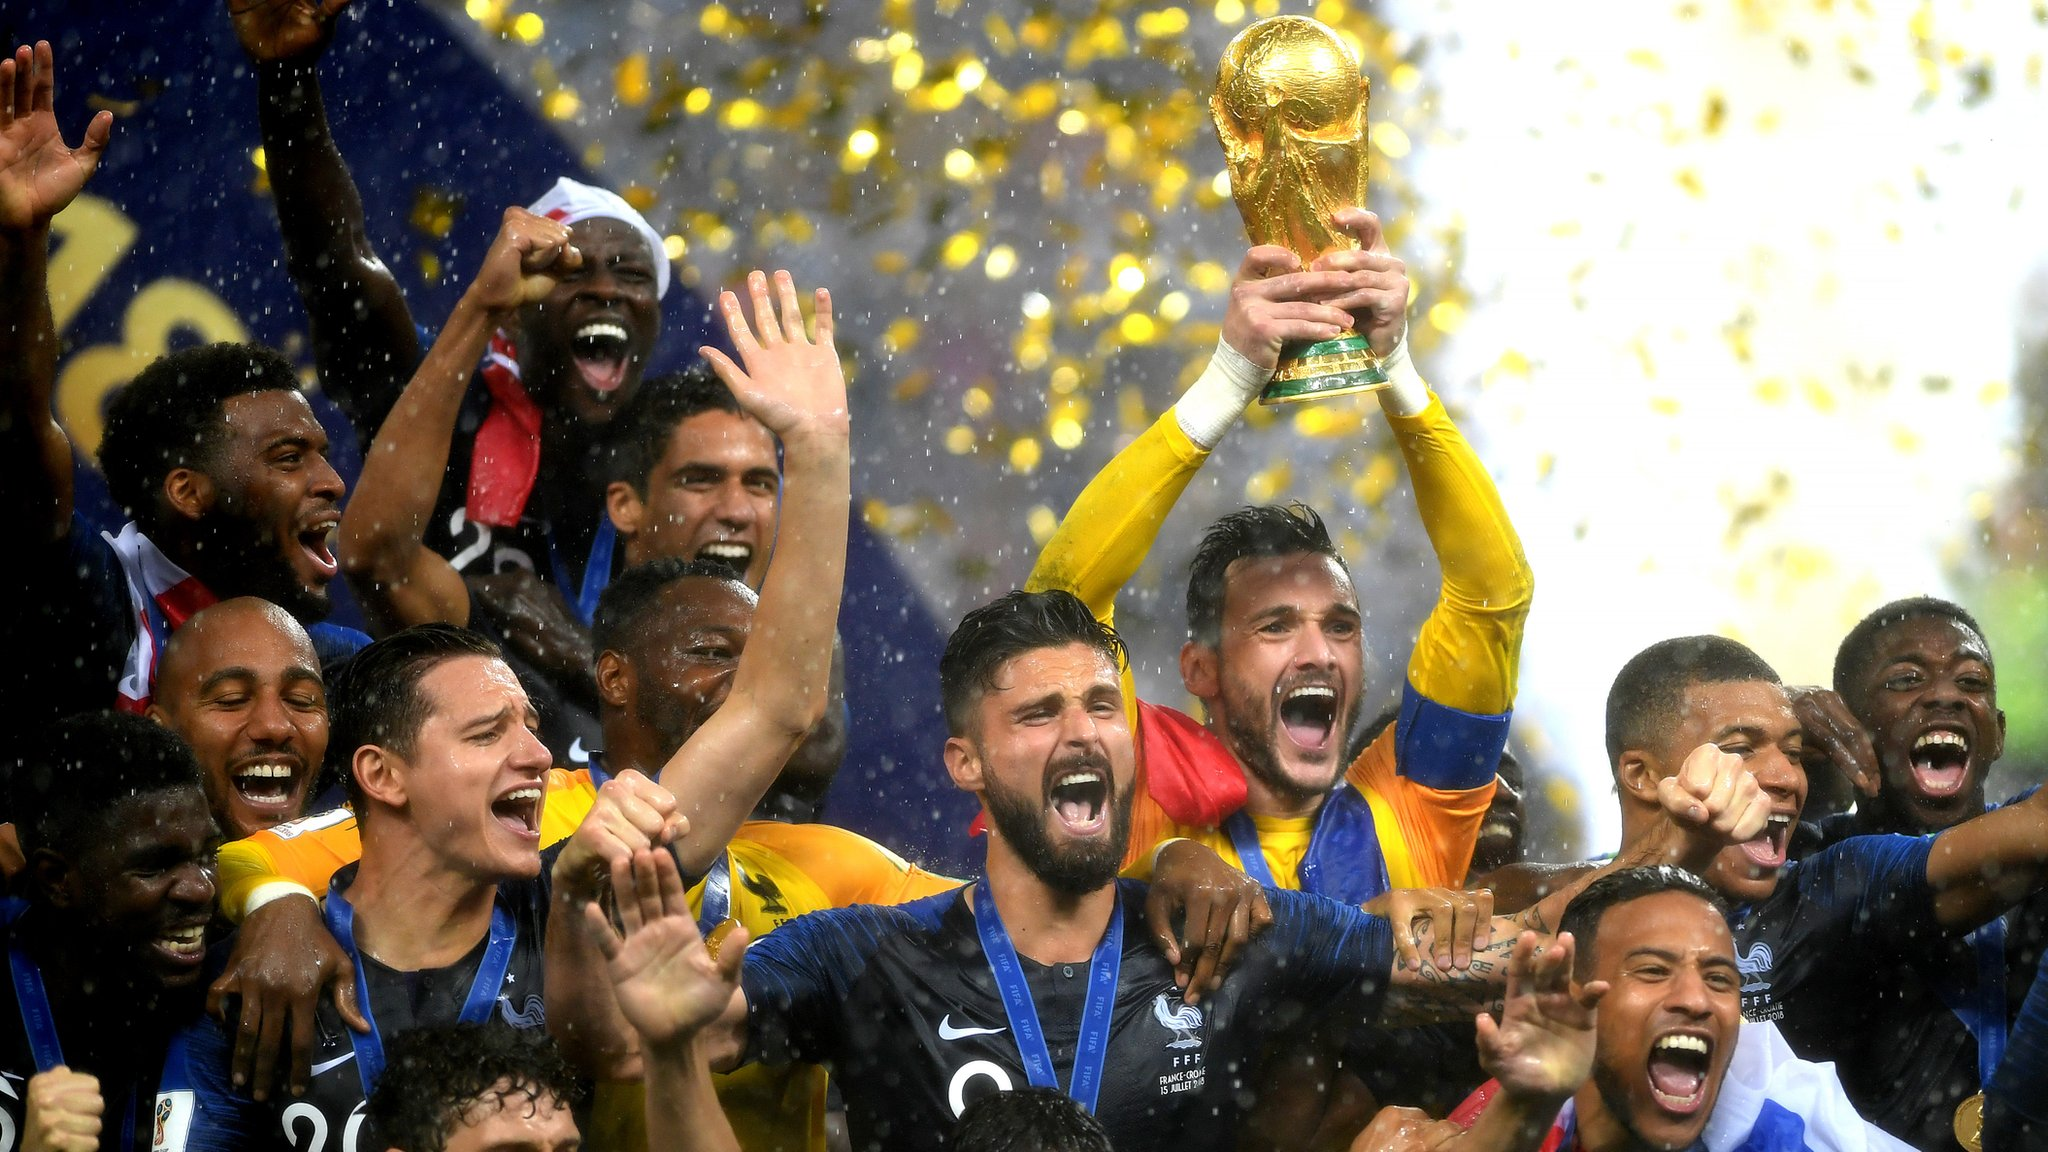 France beat Croatia in thrilling six-goal World Cup final